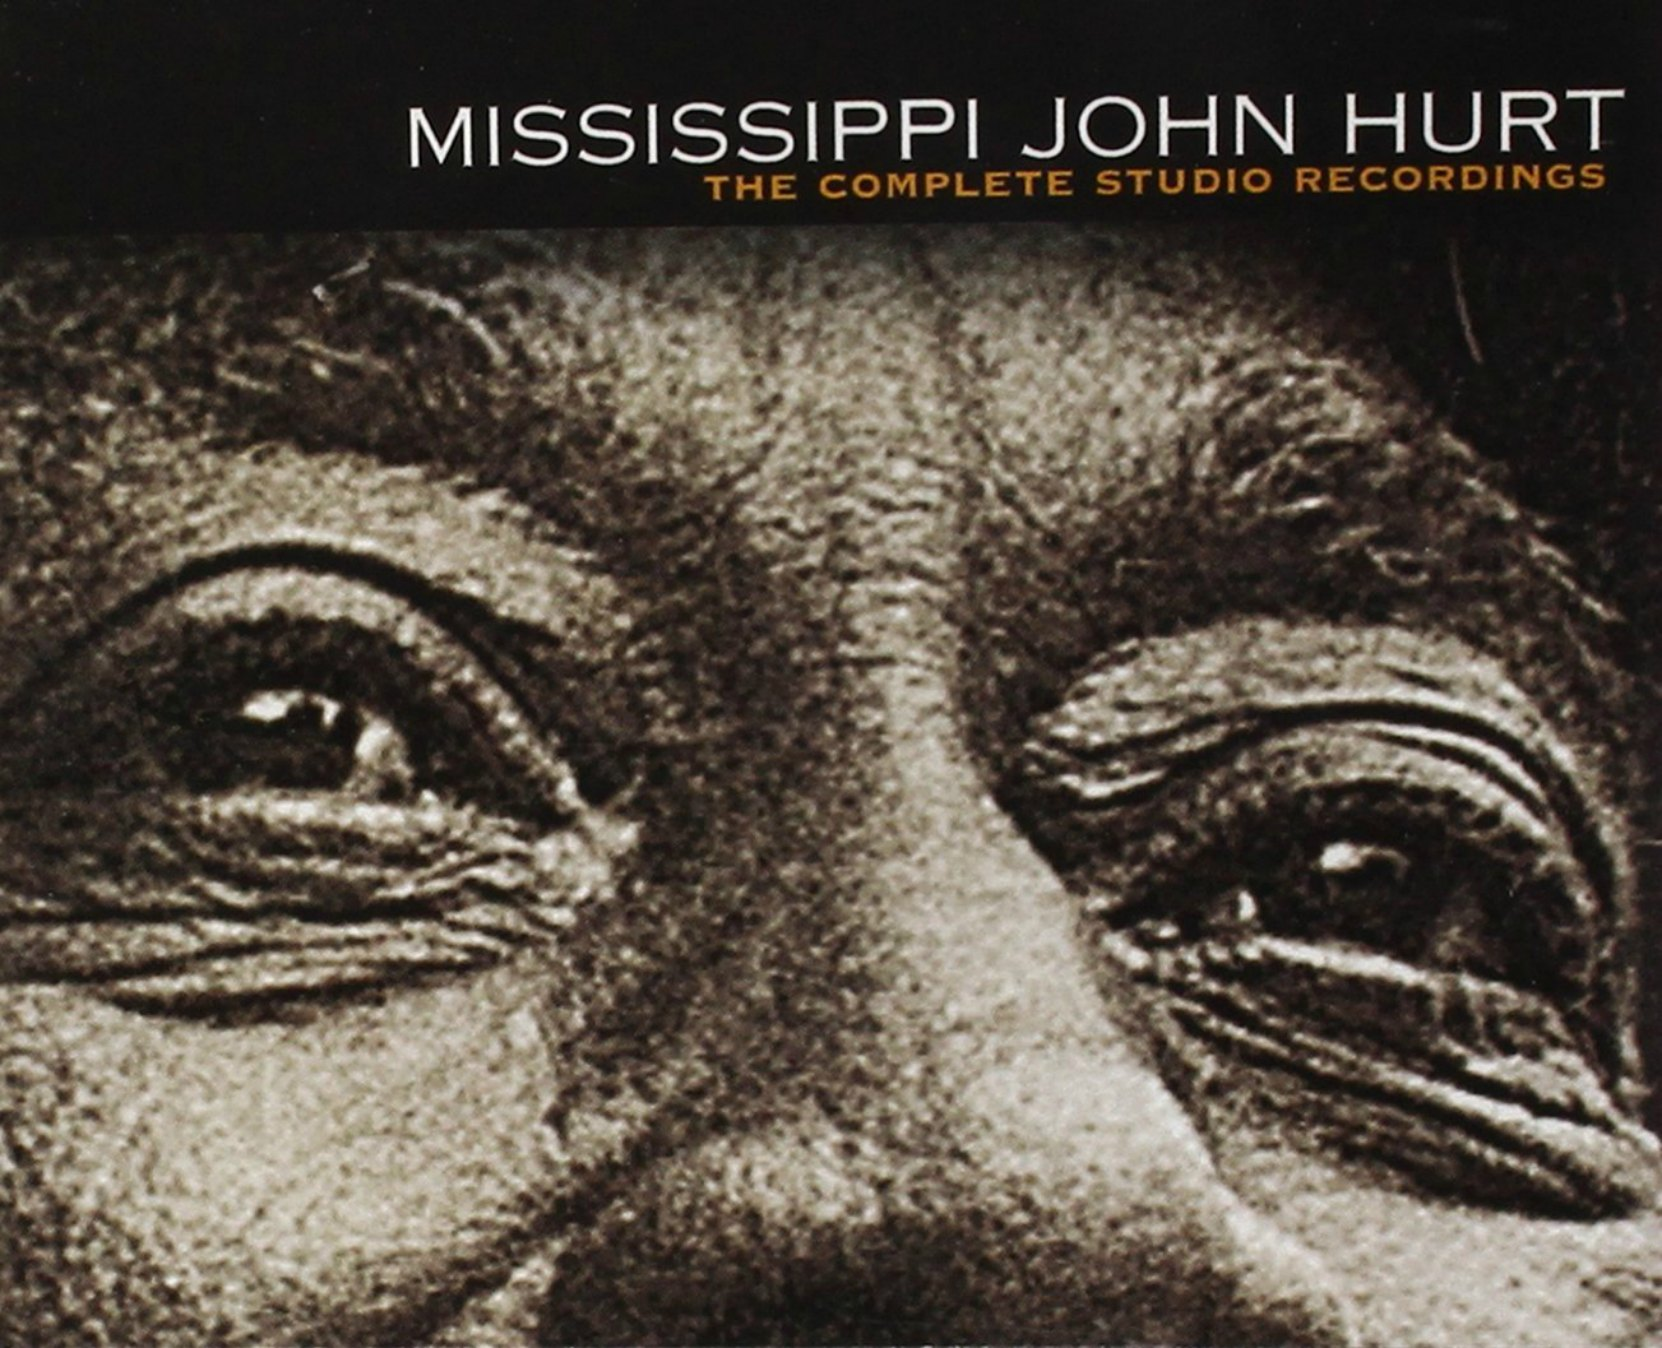 CD cover, The Complete Studio Recordings, by Mississippi John Hurt